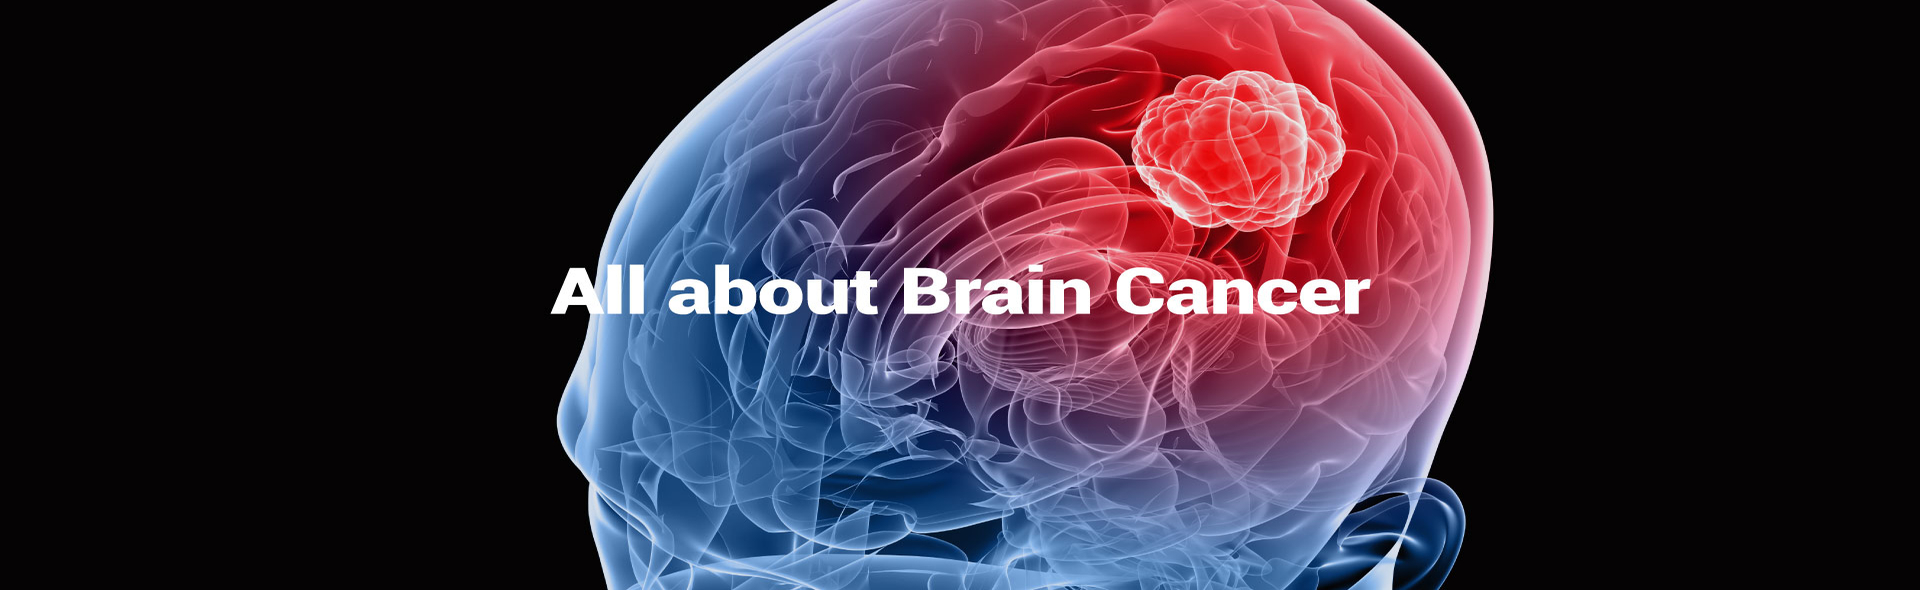 All About Brain Cancer